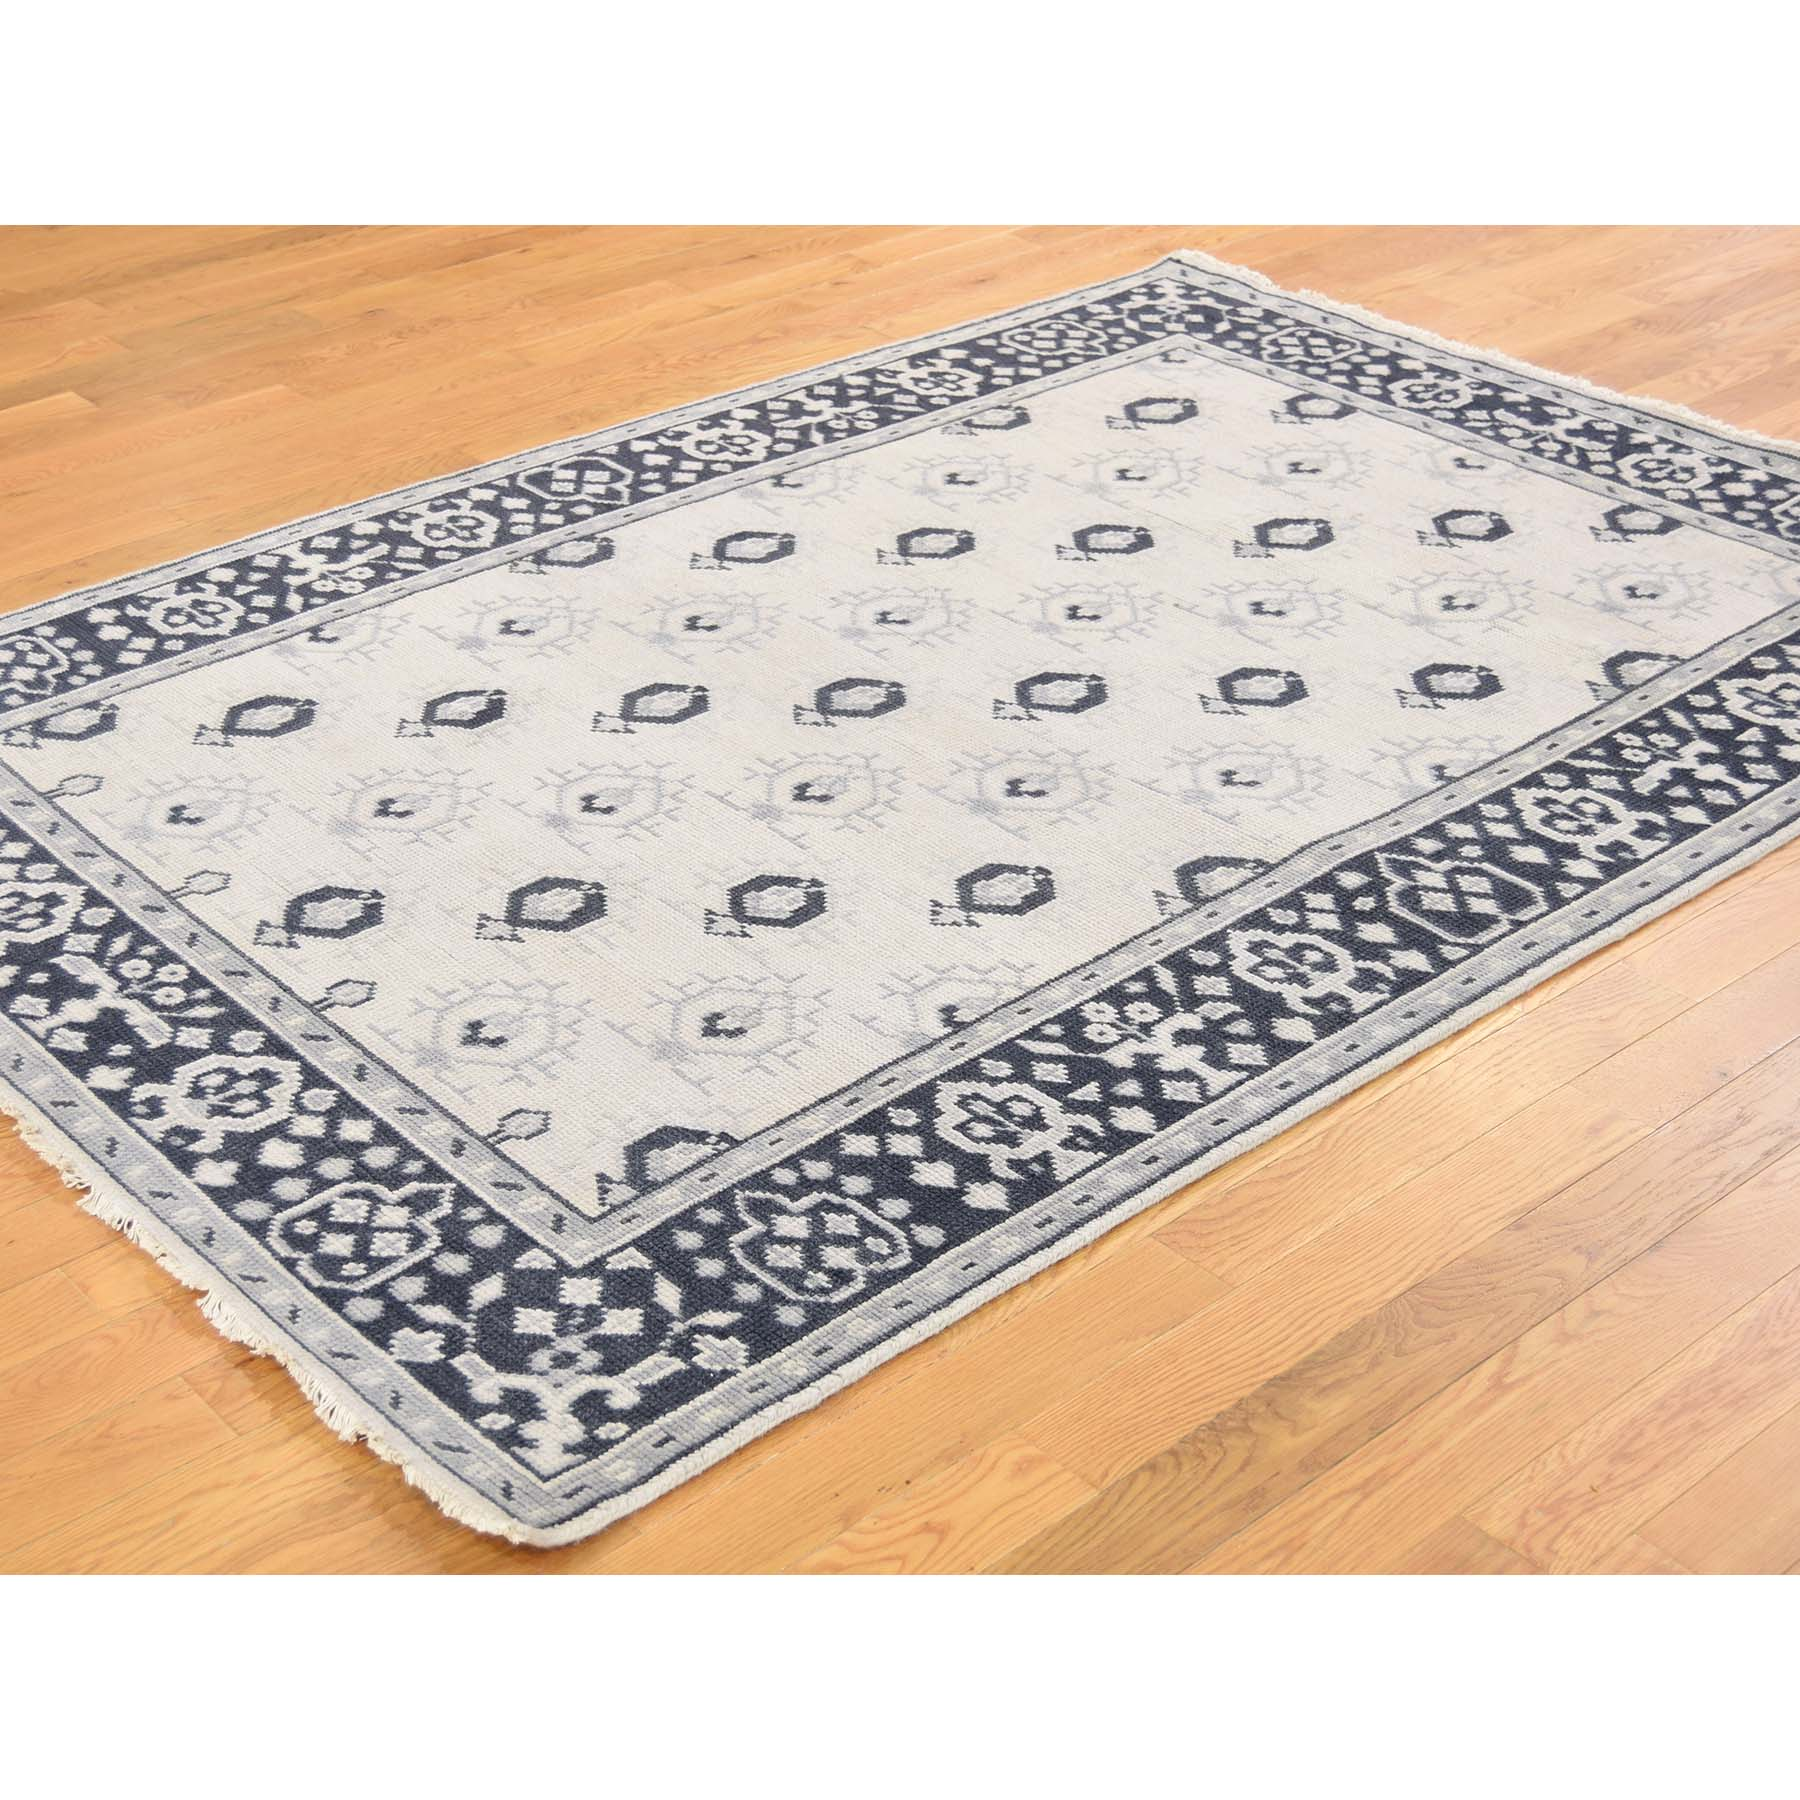 5'1''x7'1'' Hand Woven Turkish Knot Oushak Ivory Pure Wool Oriental Rug